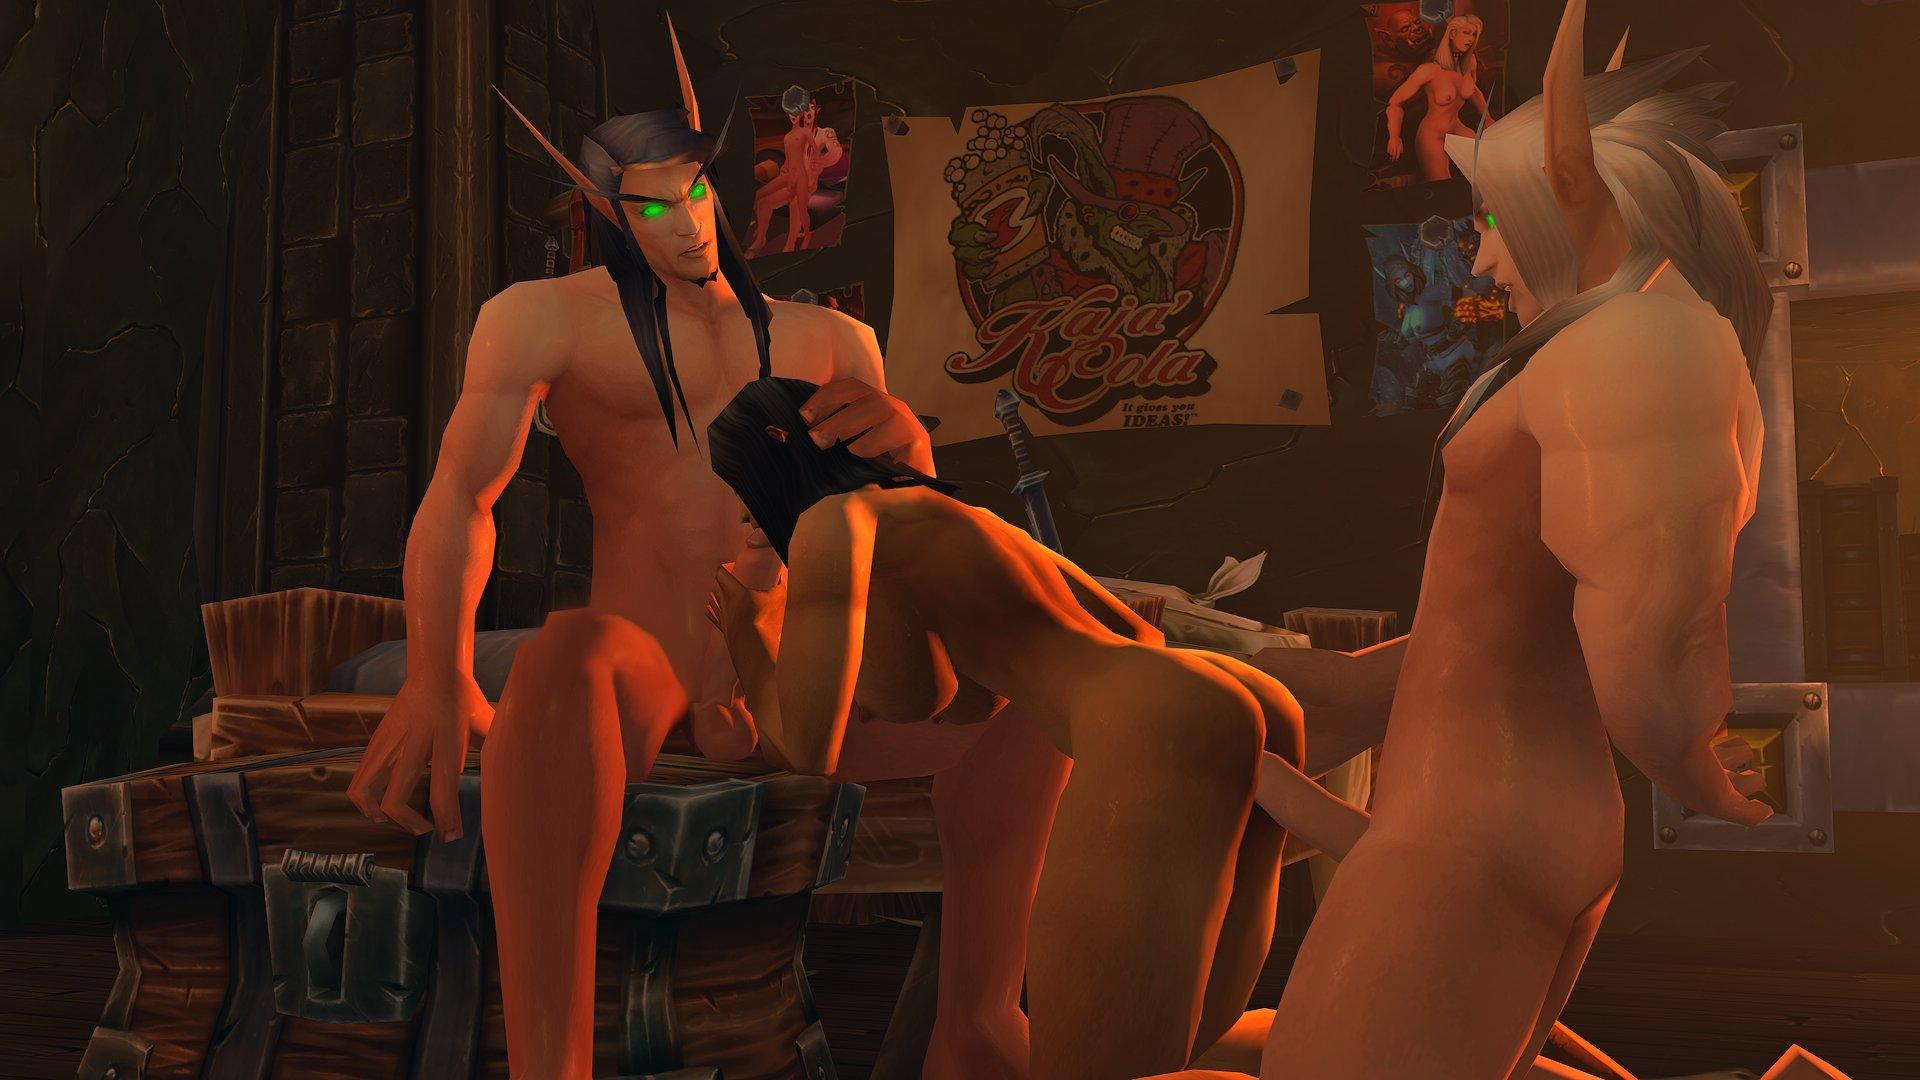 Jetson reccomend World of warcraft softcore nude